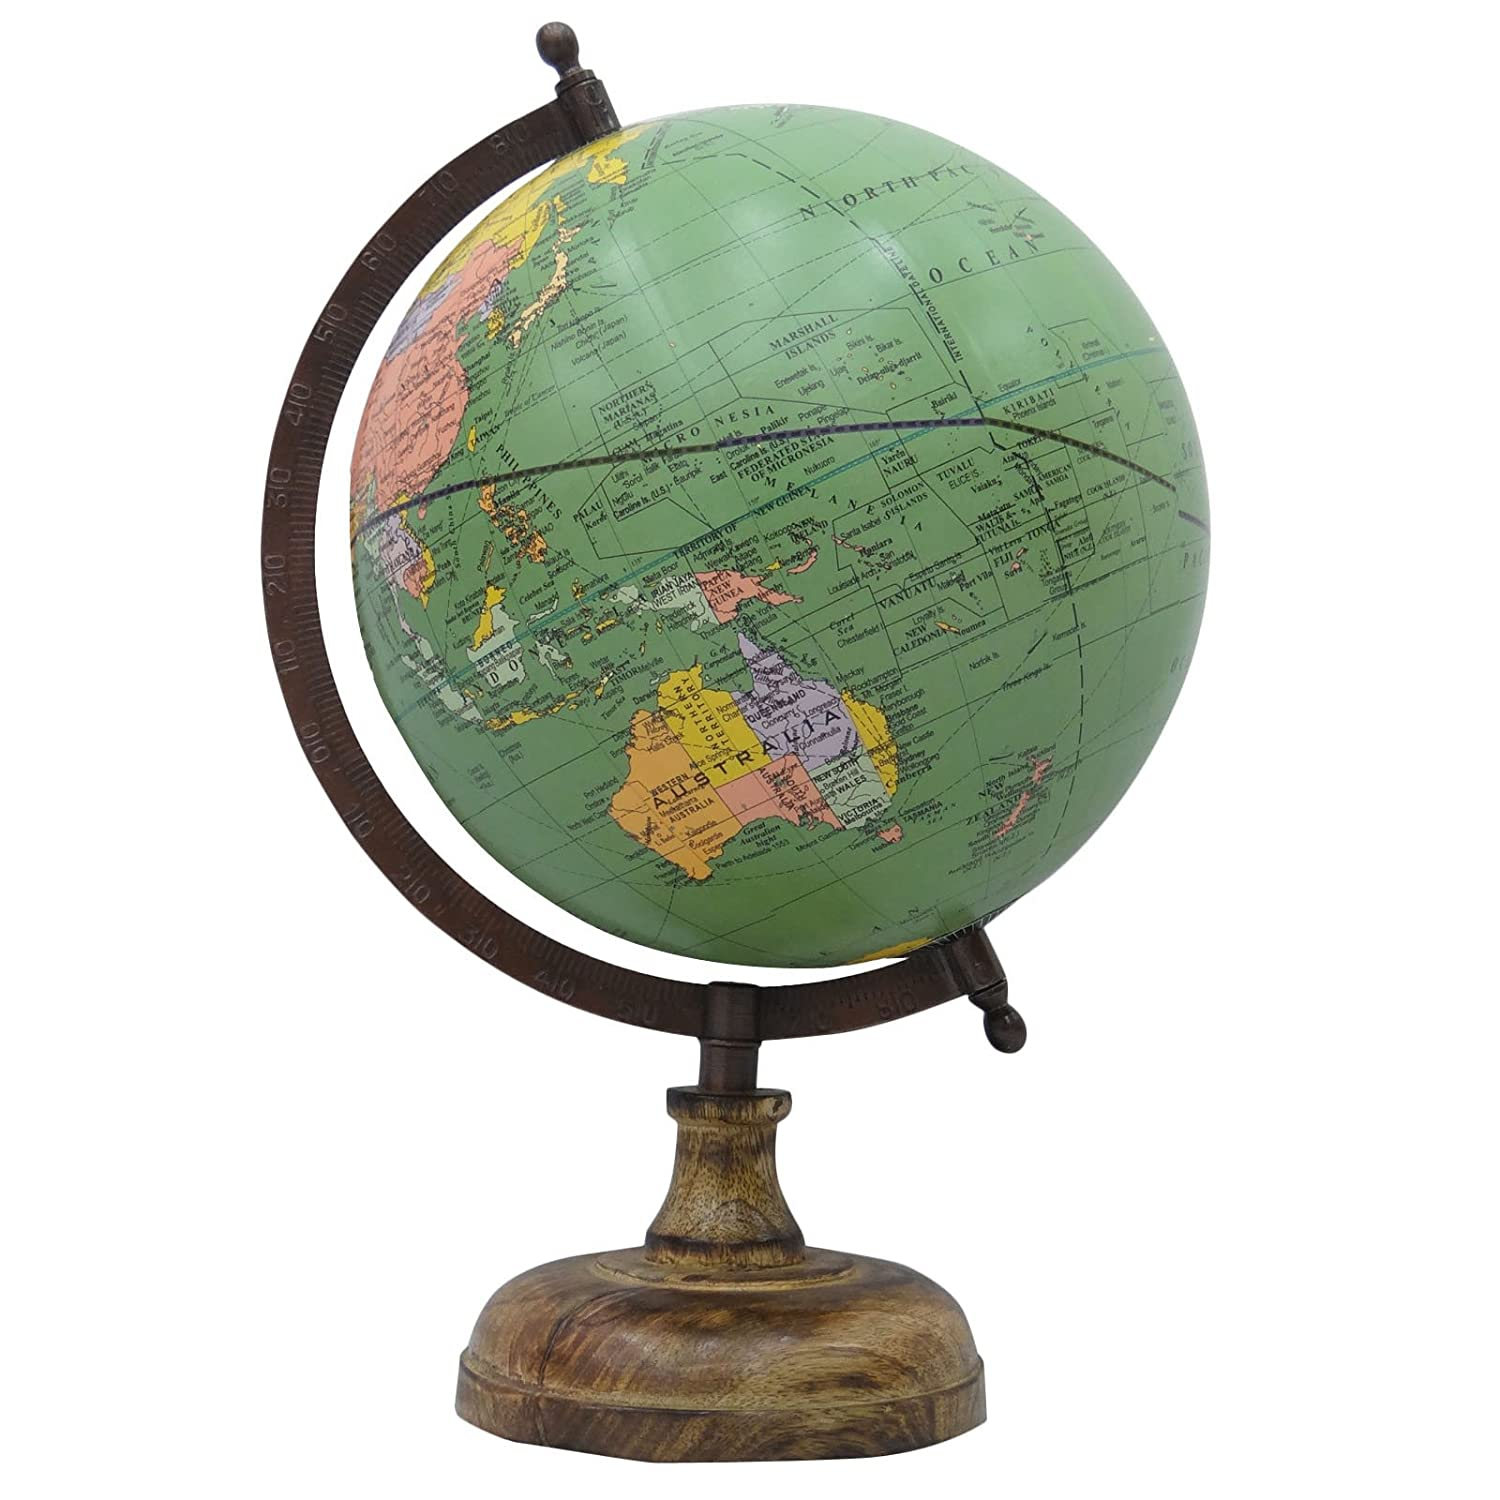 Decorative Rotating Globe Geography World Green Ocean Earth Table Decor